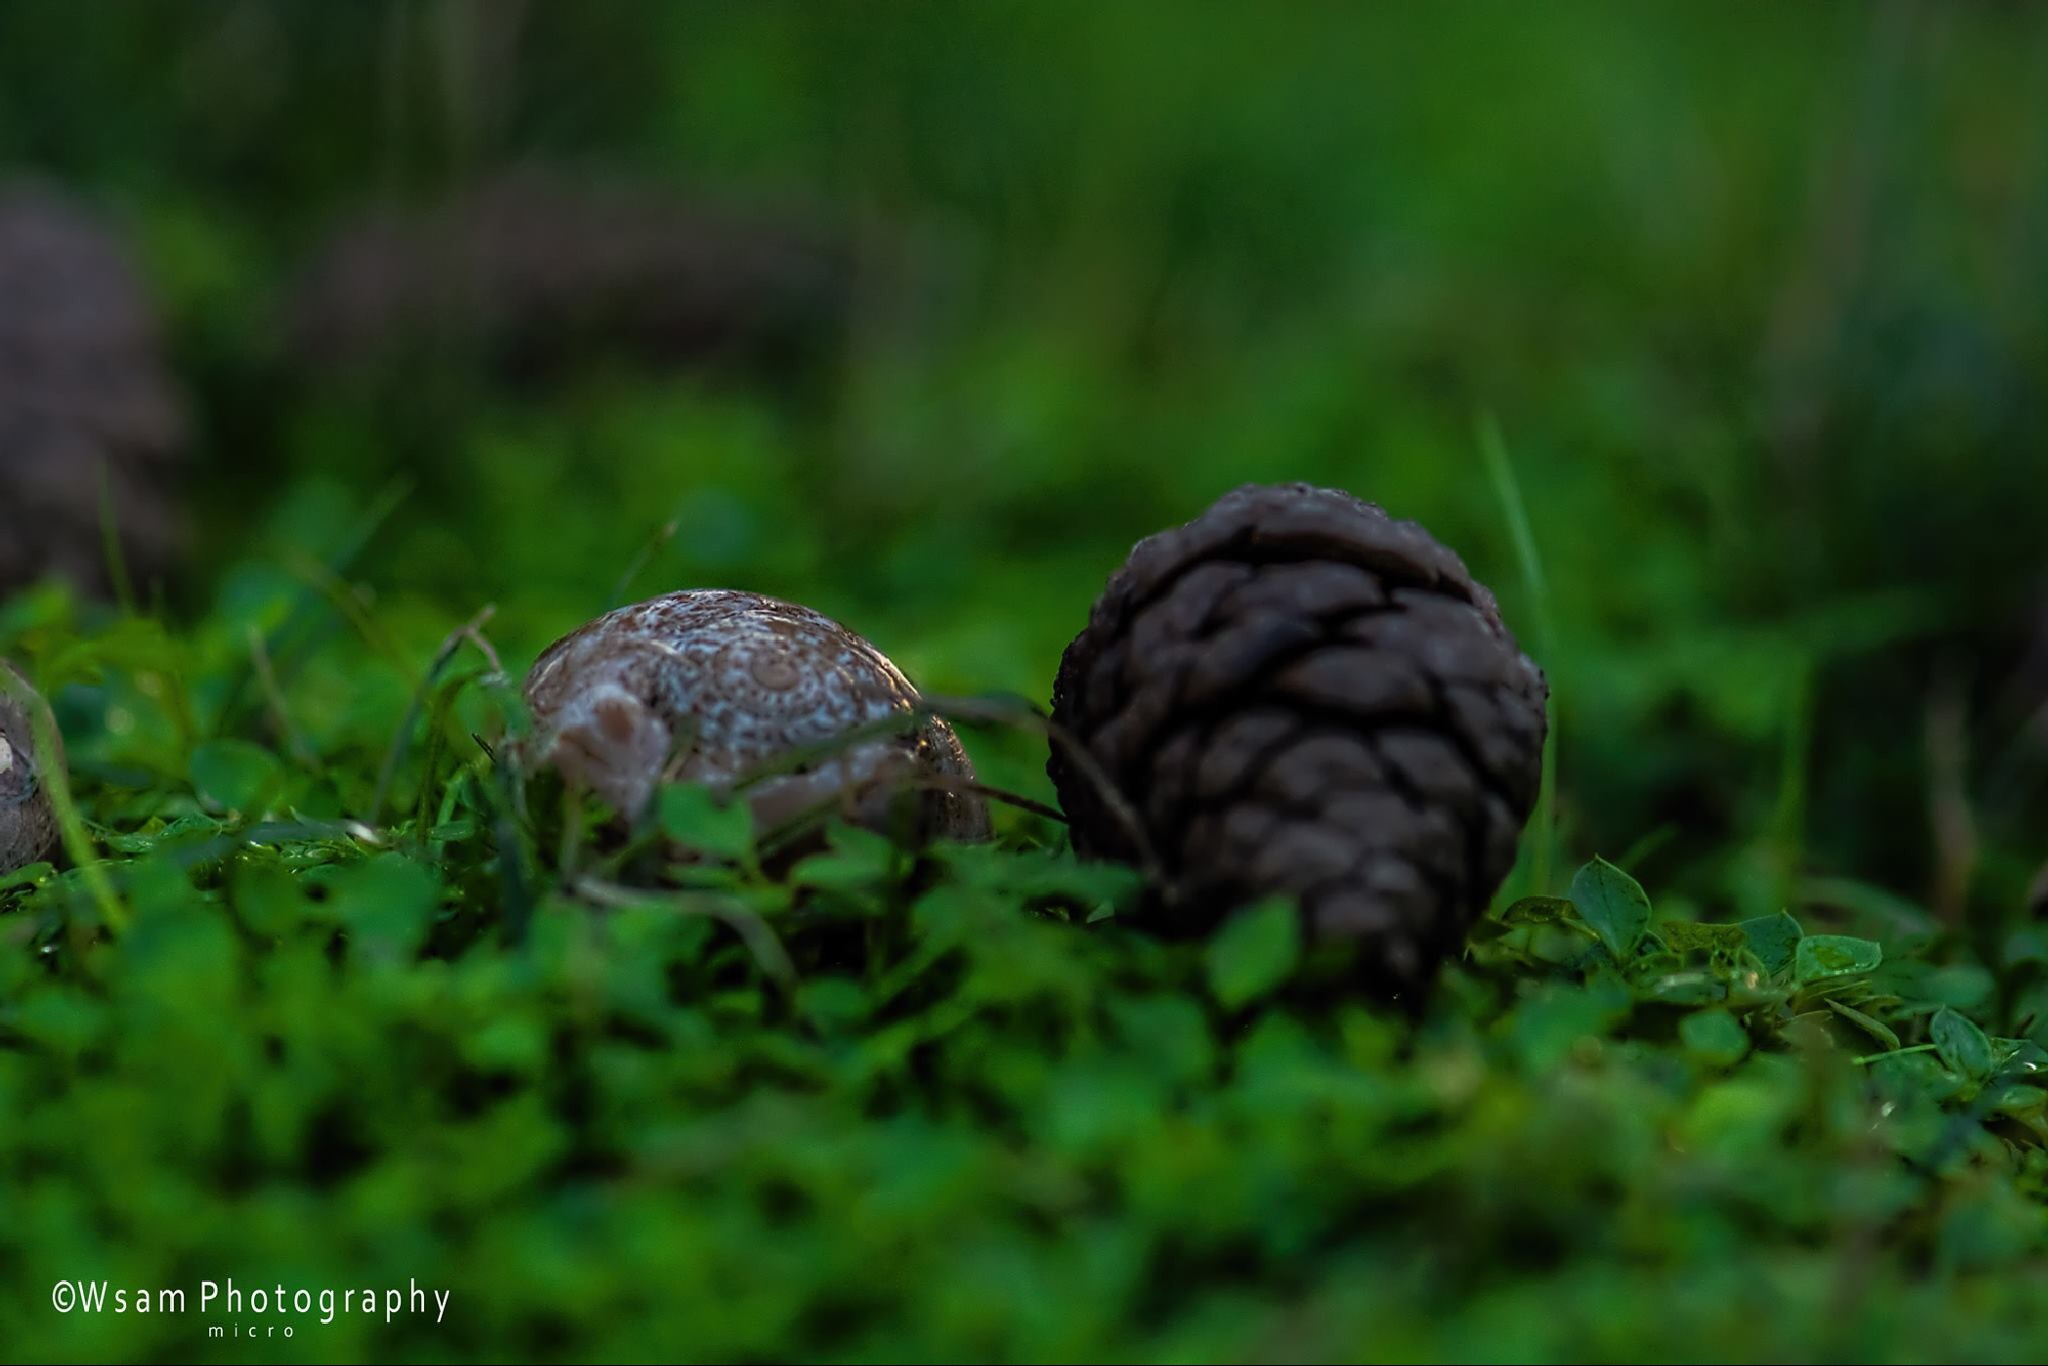 Untitled by wsam photography